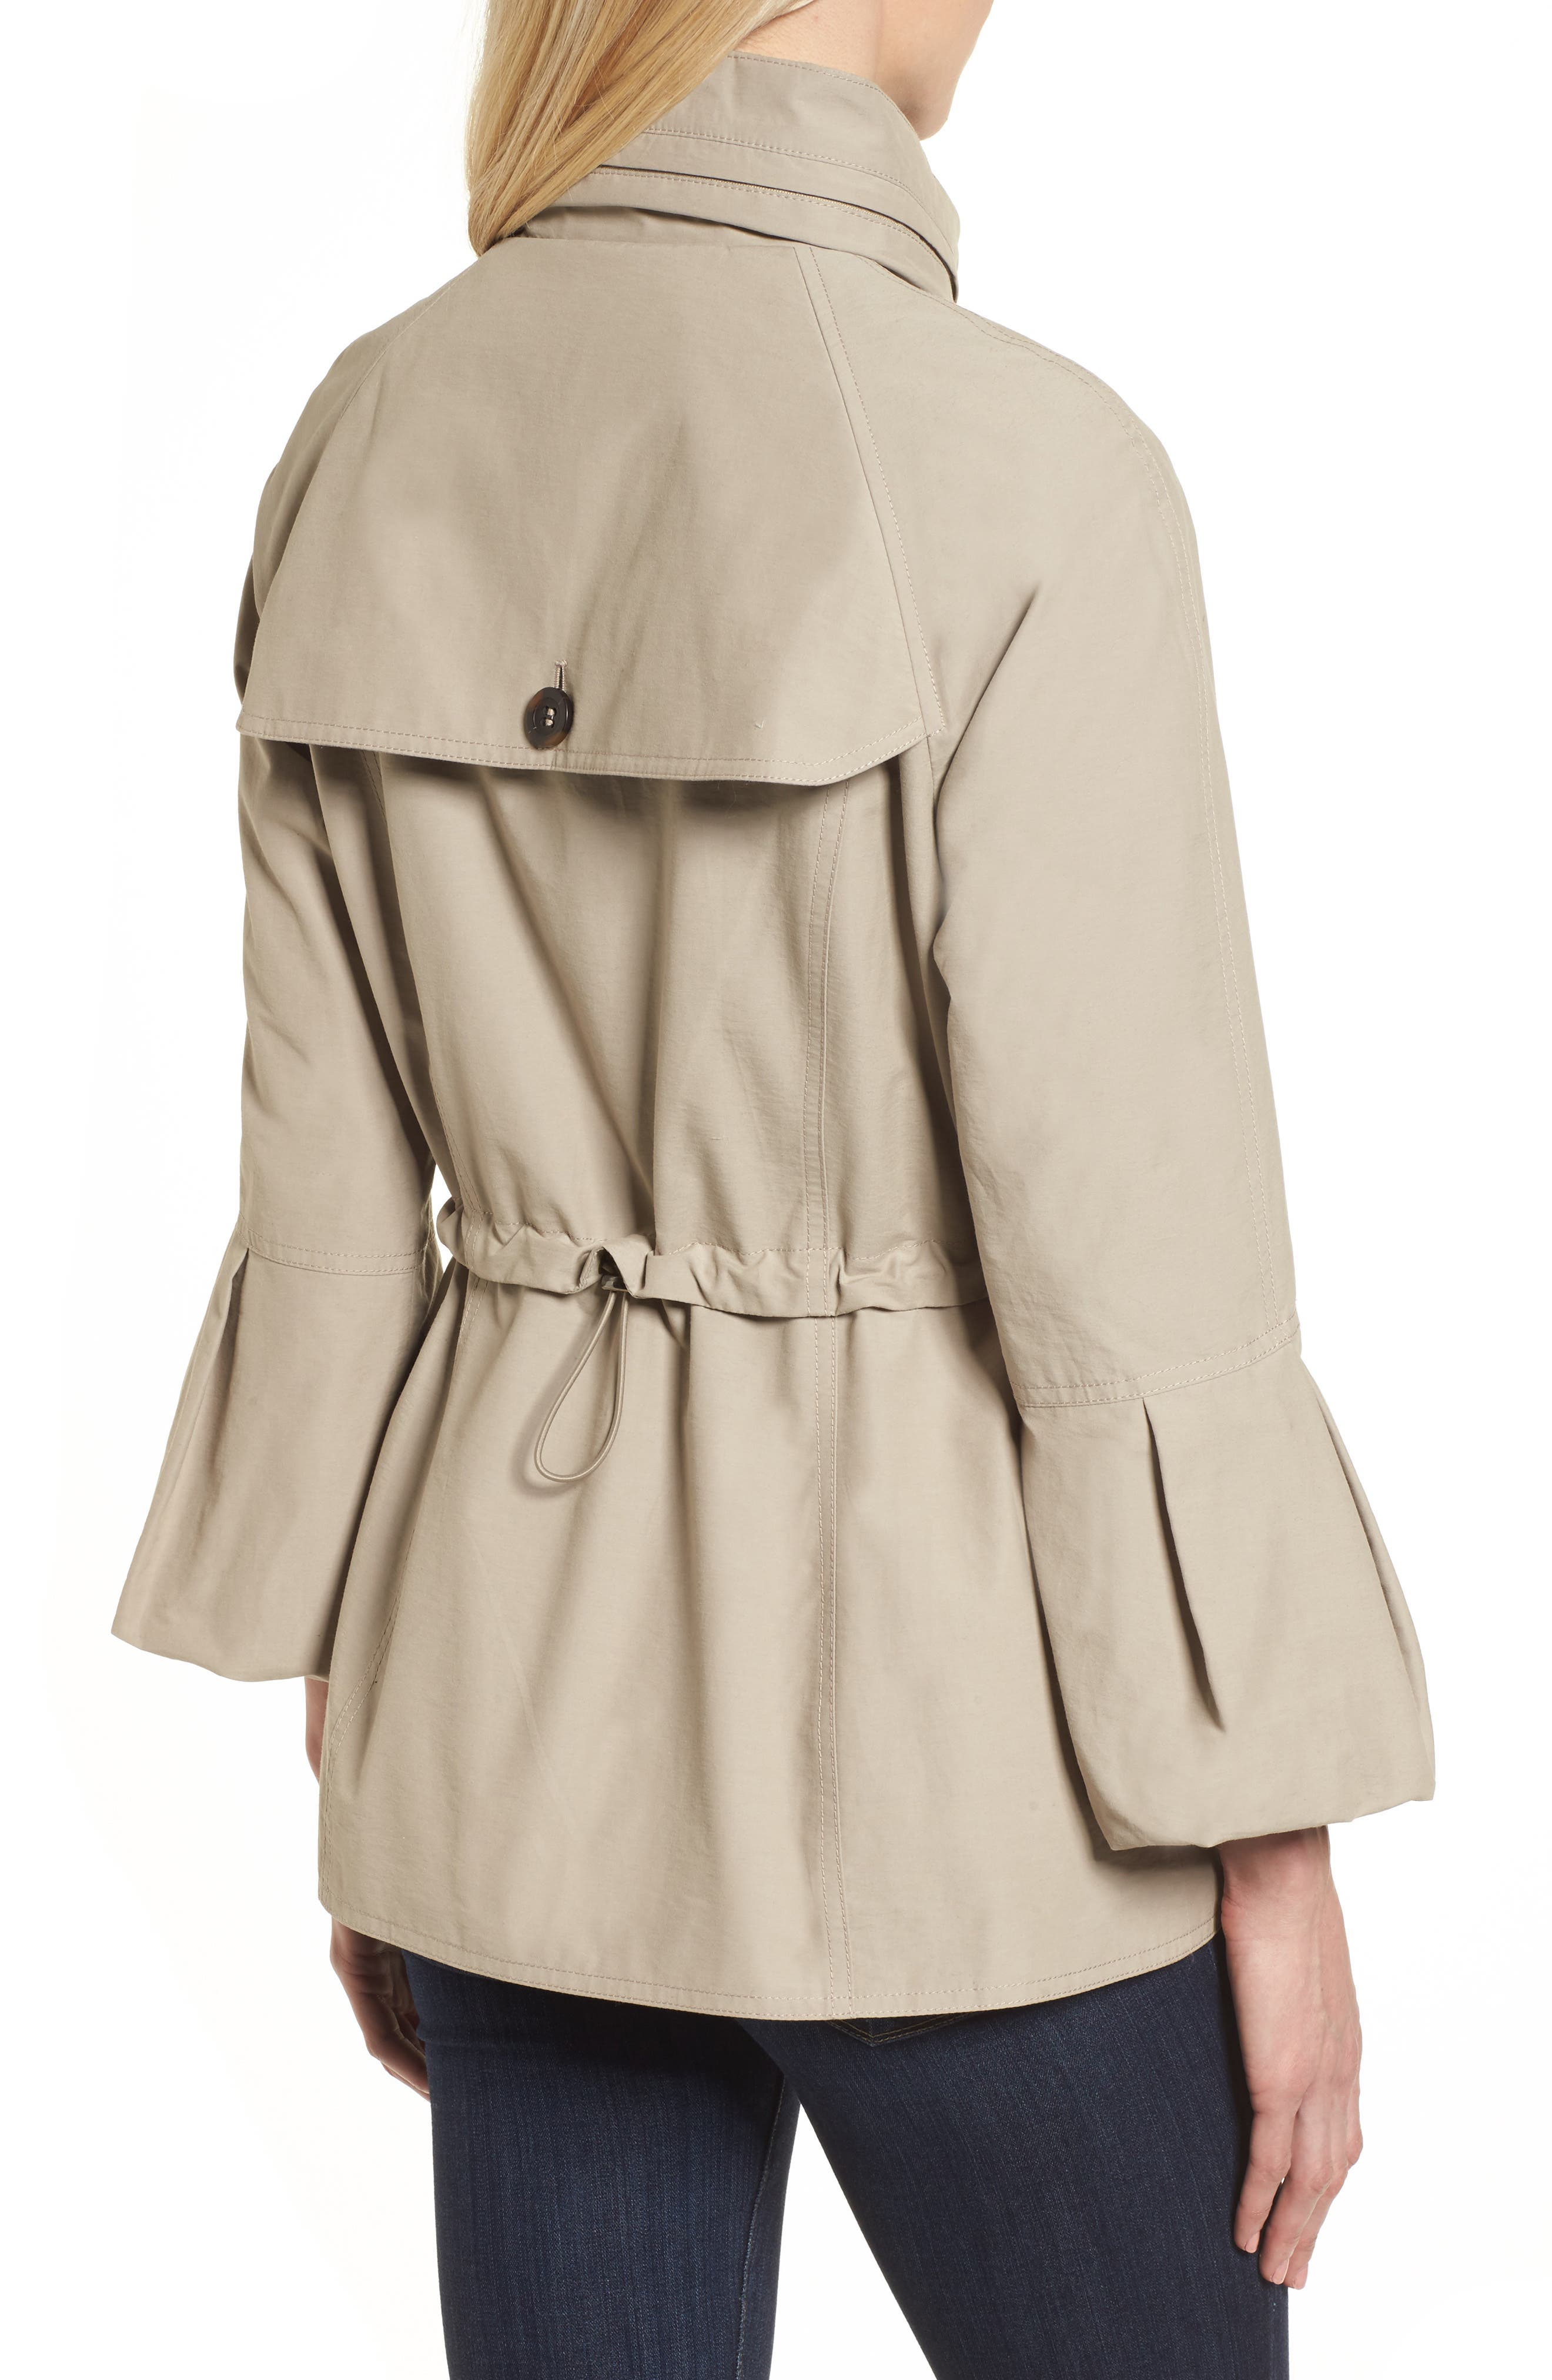 Bell Sleeve Jacket with Stowaway Hood,                             Alternate thumbnail 2, color,                             255